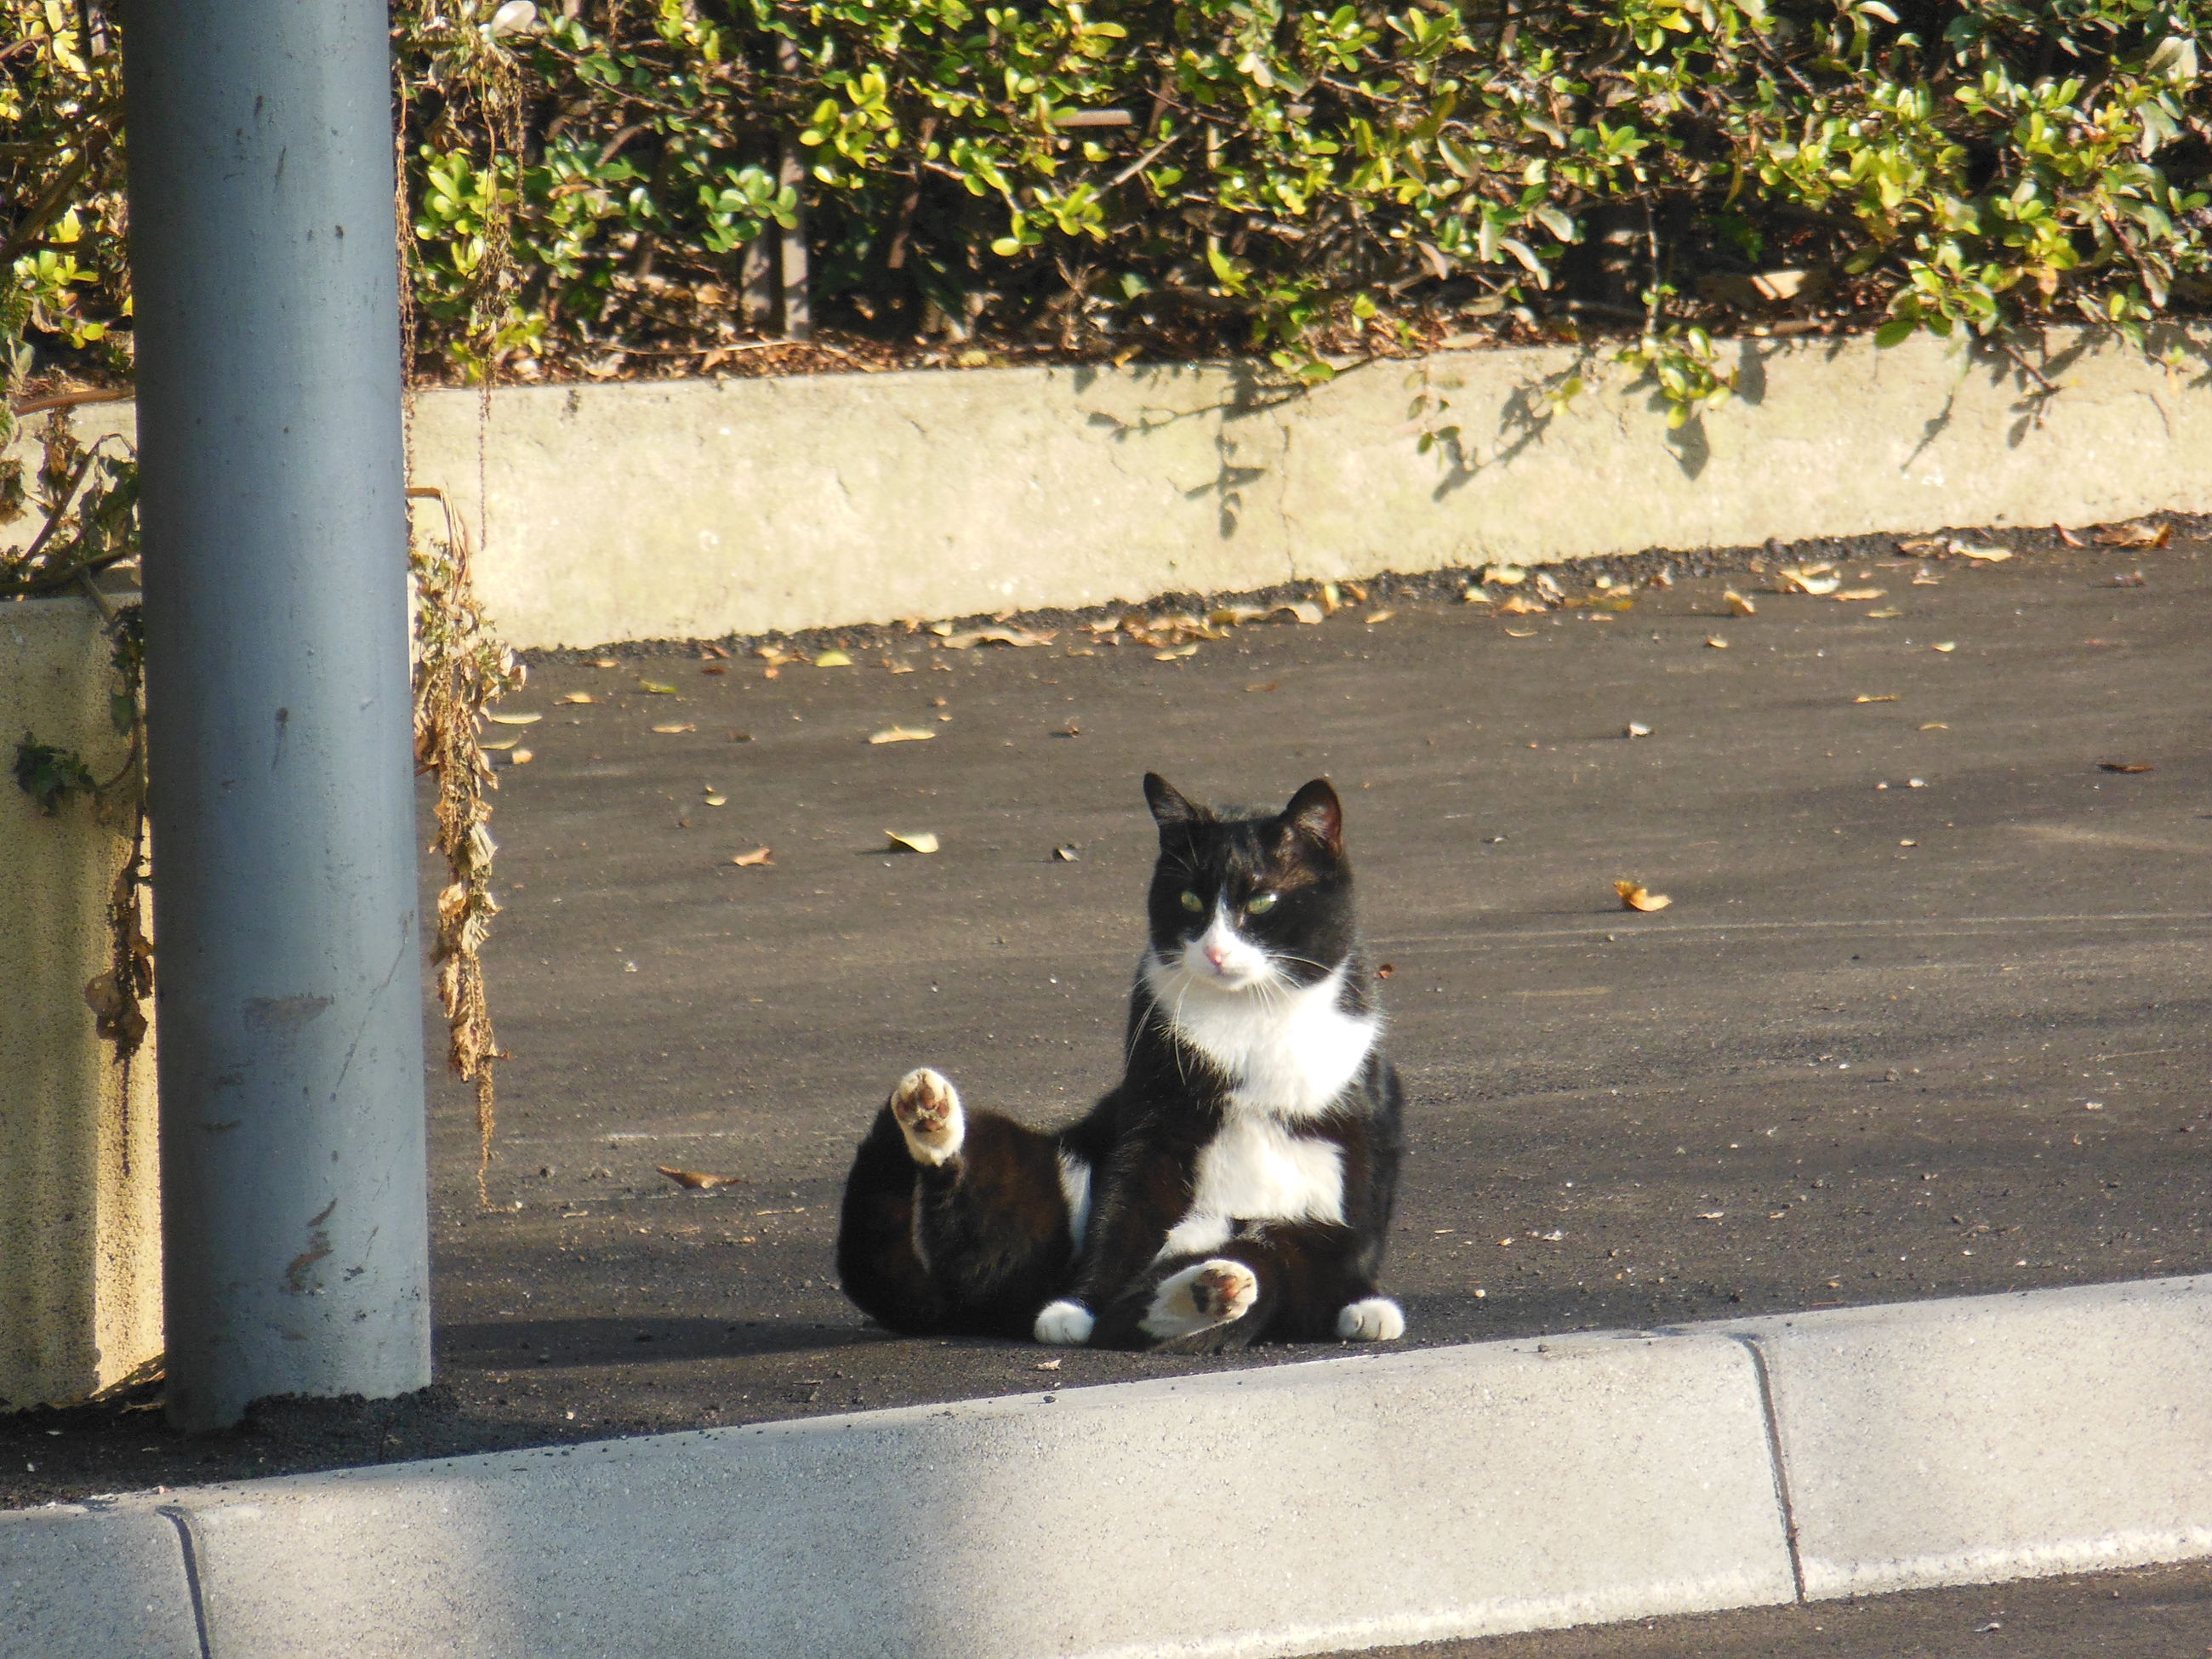 pets, domestic animals, animal themes, mammal, one animal, domestic cat, cat, feline, dog, high angle view, sitting, relaxation, stray animal, street, looking at camera, outdoors, whisker, carnivora, footpath, sidewalk